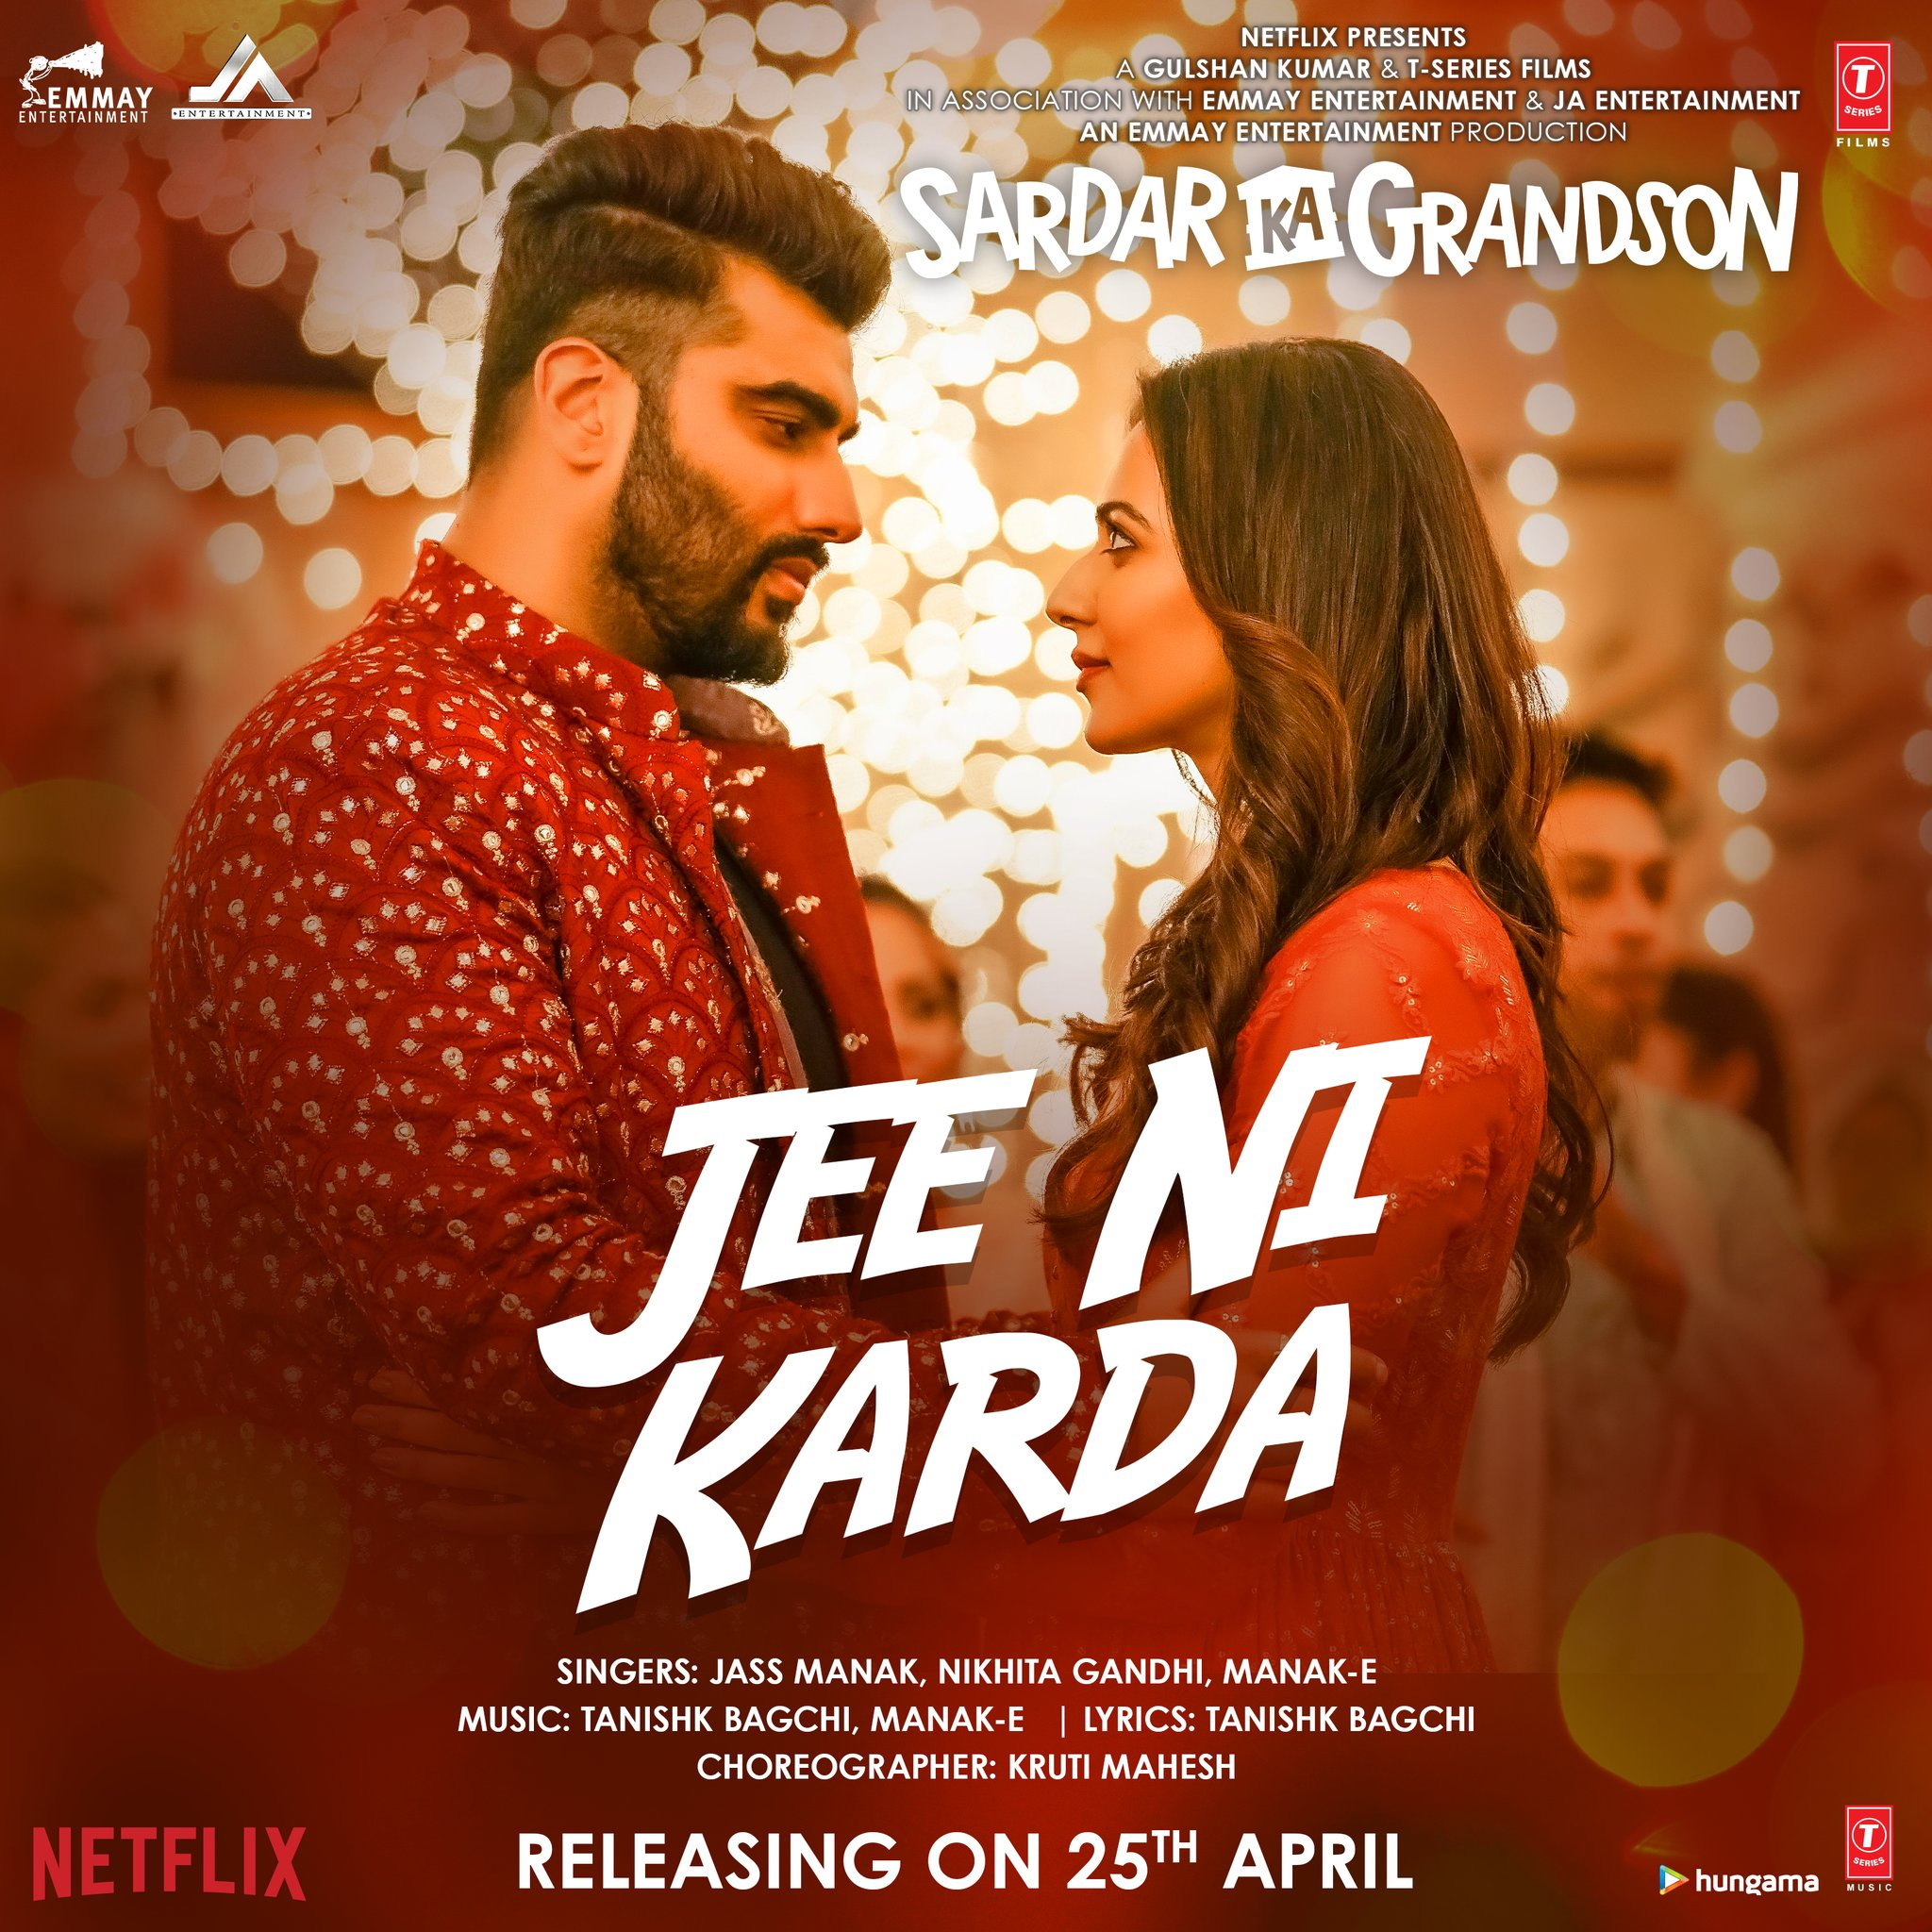 Jee Ni Karda (Sardar Ka Grandson) 2021 Hindi Video Song 1080p HDRip 53MB Download